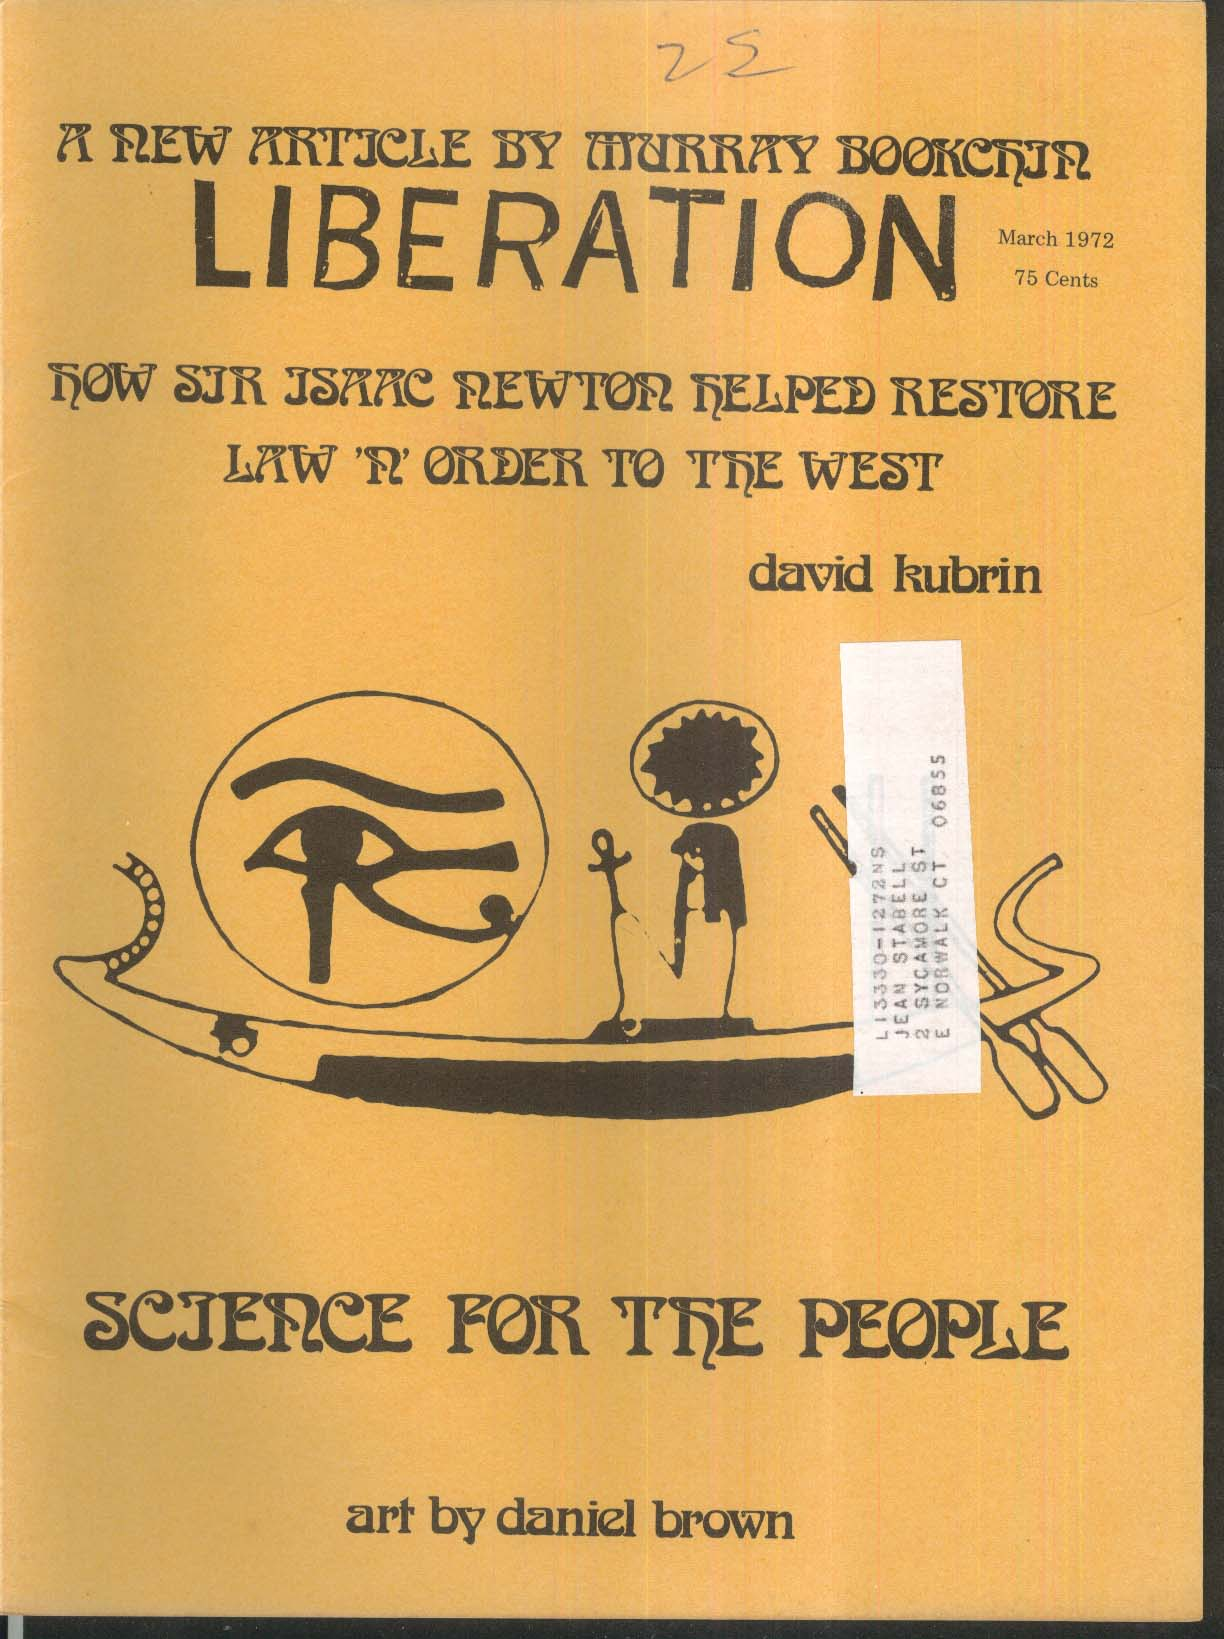 LIBERATION Murray Bookchin Walter Schneir Karen Swenson 3 1972